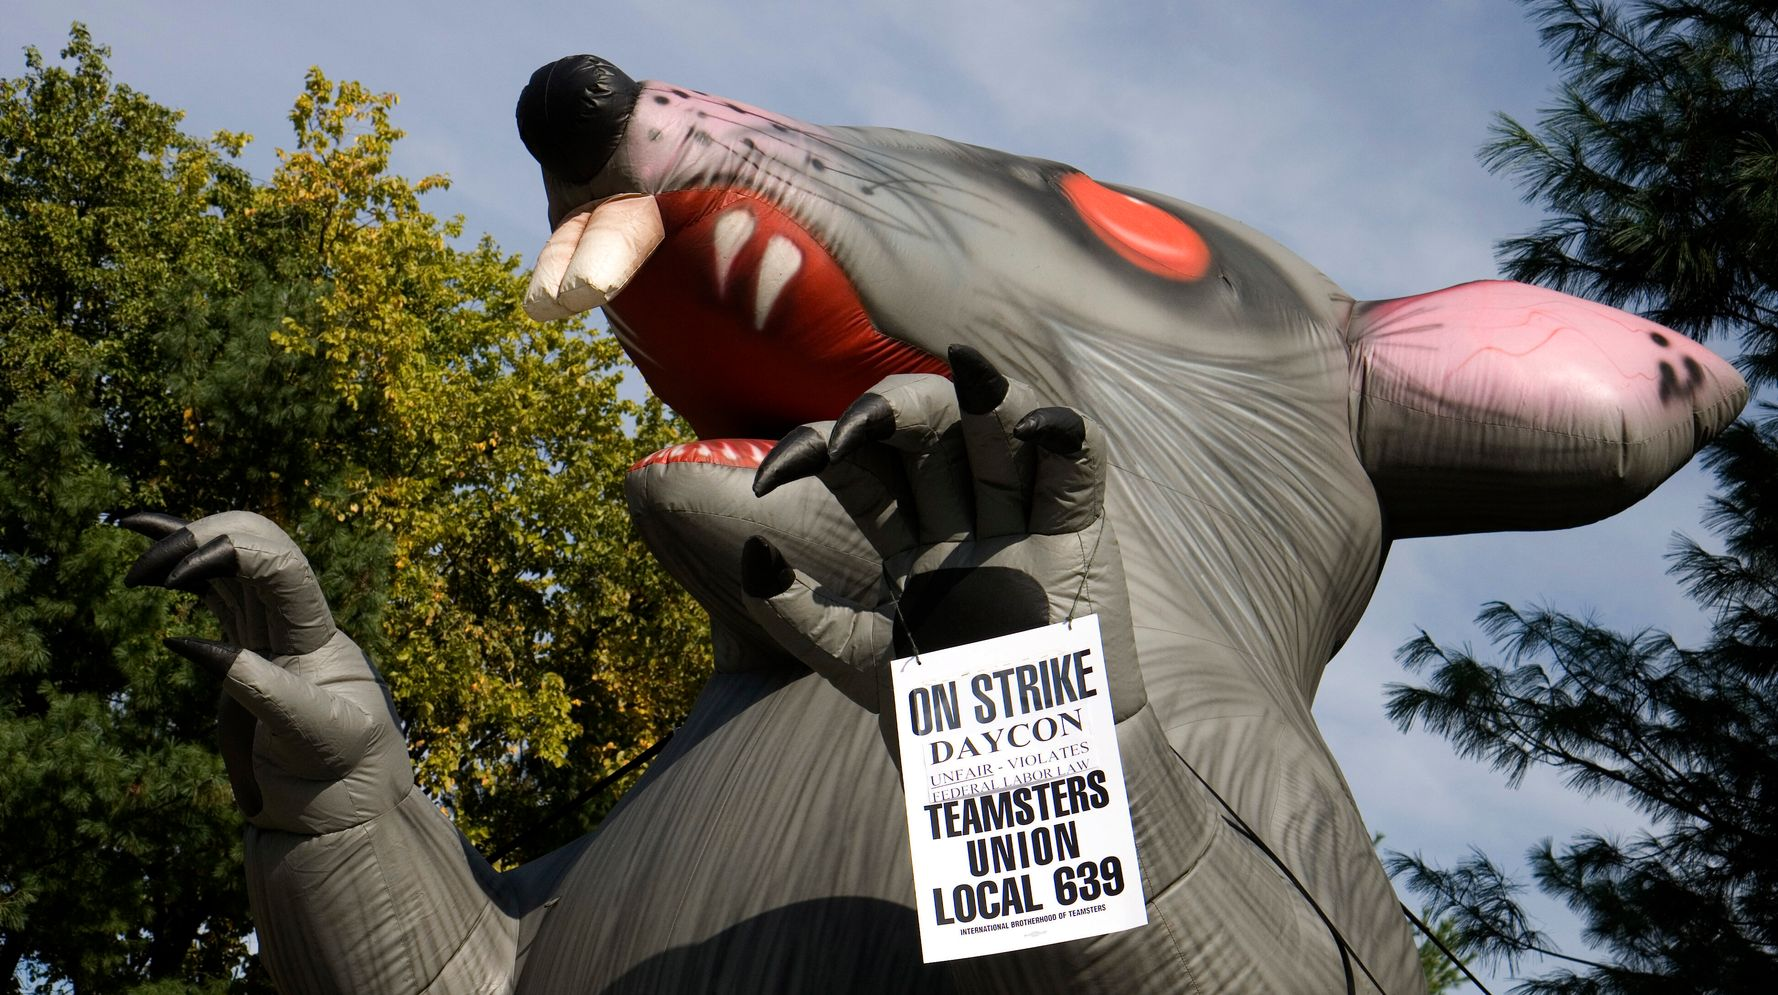 Scabby The Rat, Union Protest Icon, Survives Legal Challenge From Trump Appointee